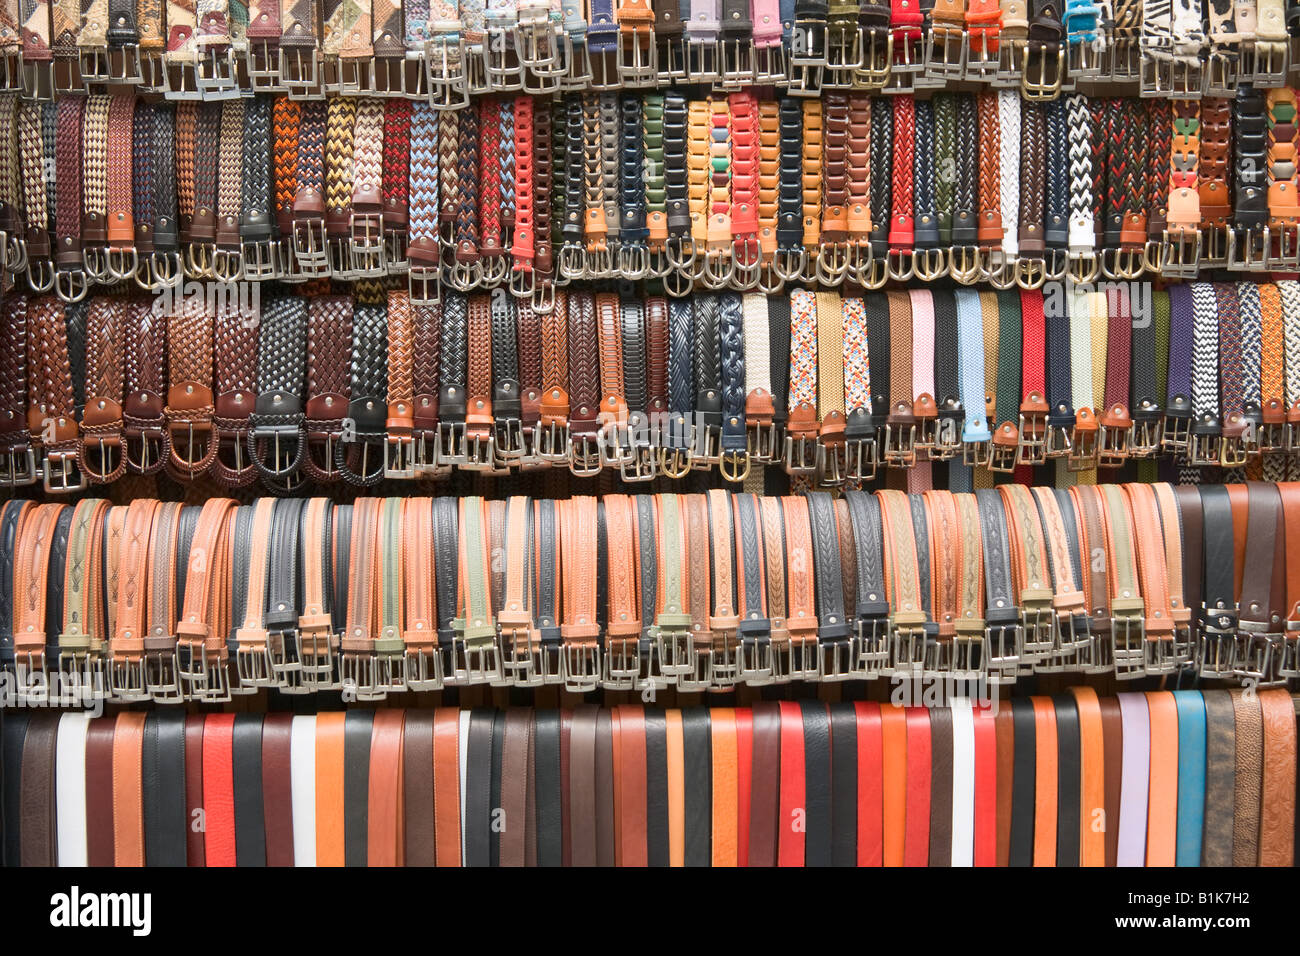 Belts hang down in a row for sale, Florence, Italy - Stock Image